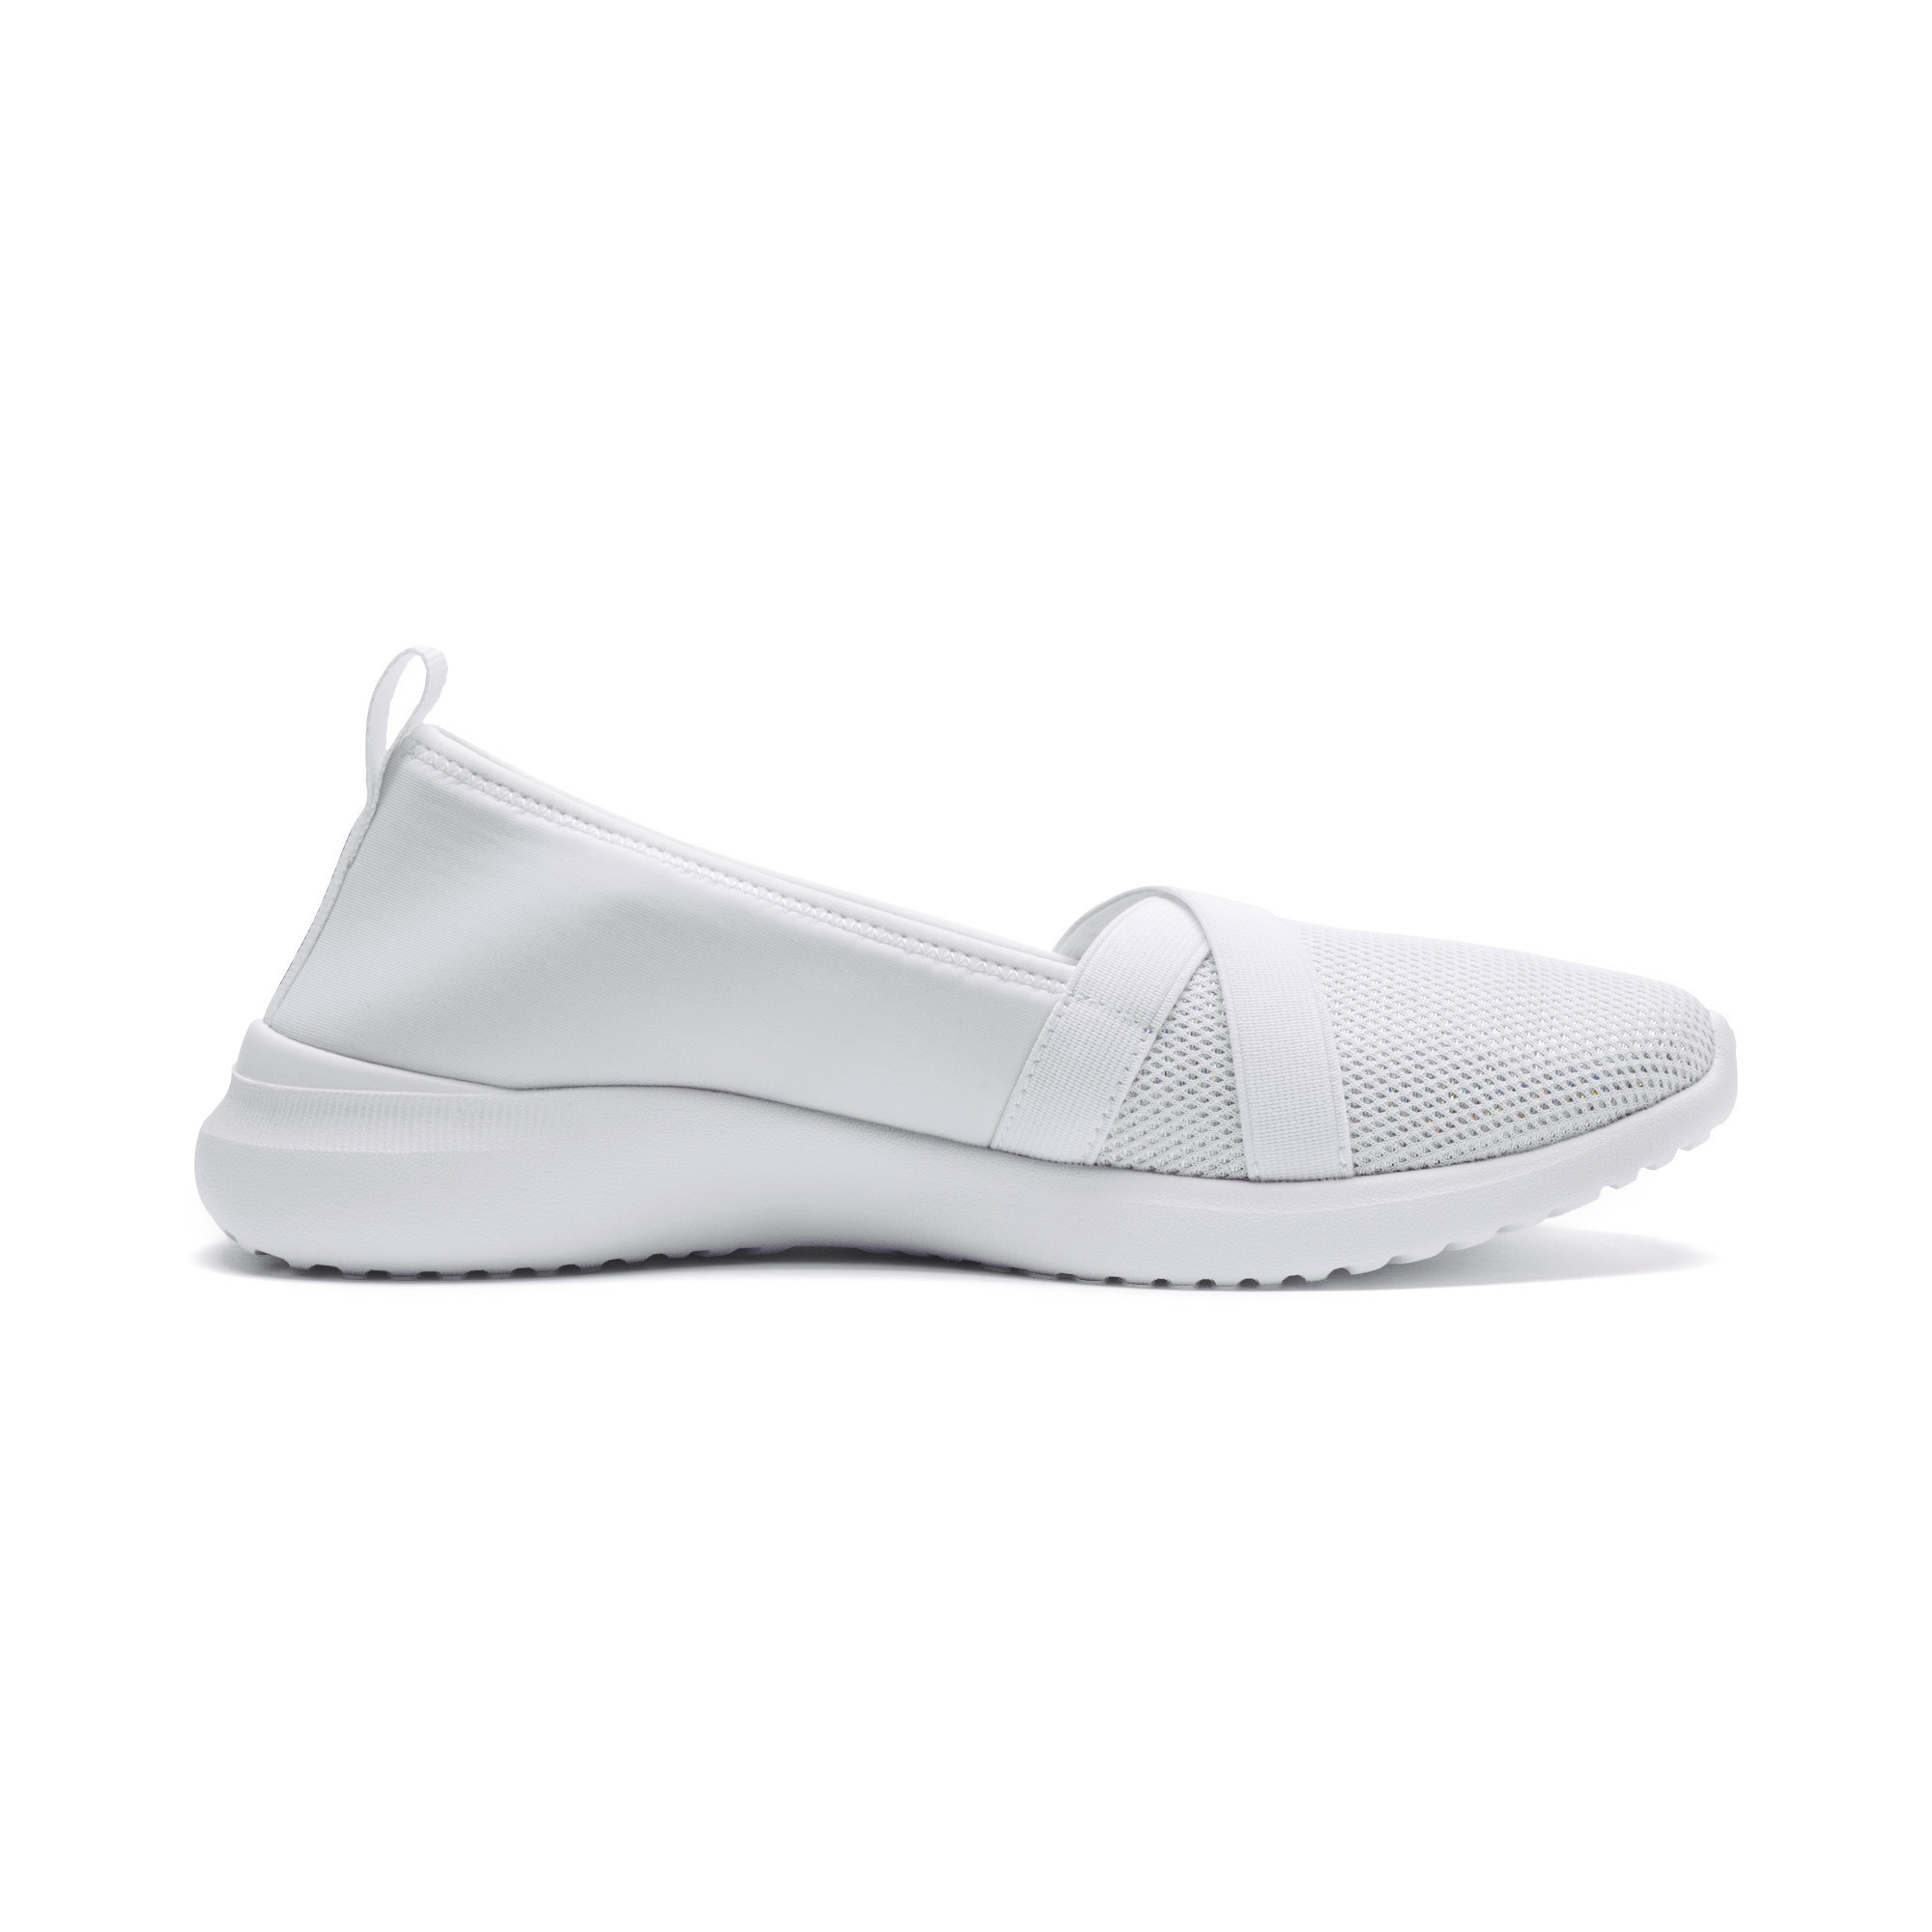 PUMA-Adelina-Sparkle-Women-s-Ballet-Shoes-Women-Shoe-Basics thumbnail 12